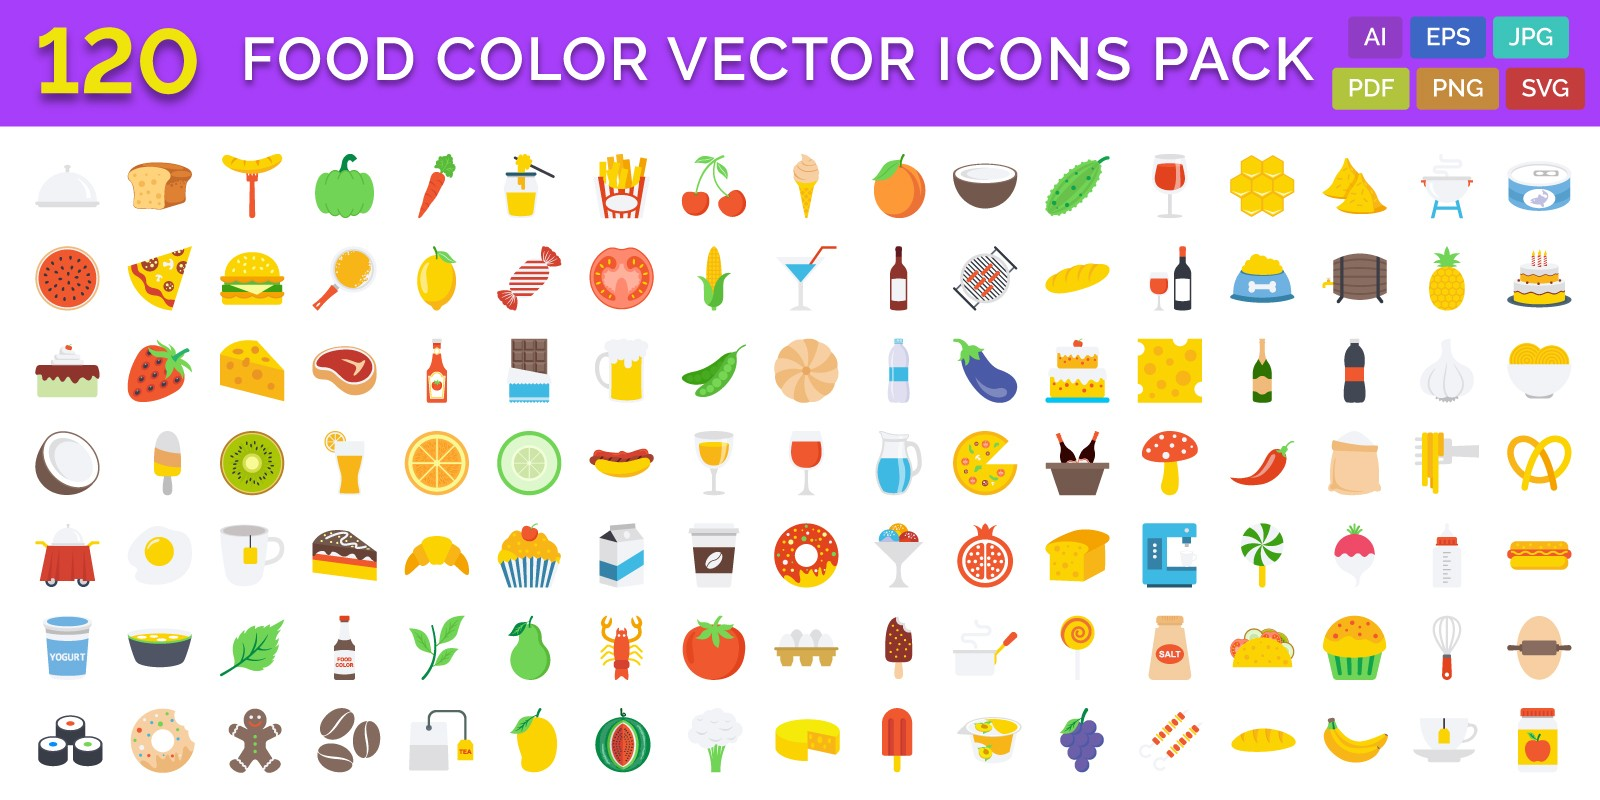 120 Food Color Vector Icons Pack